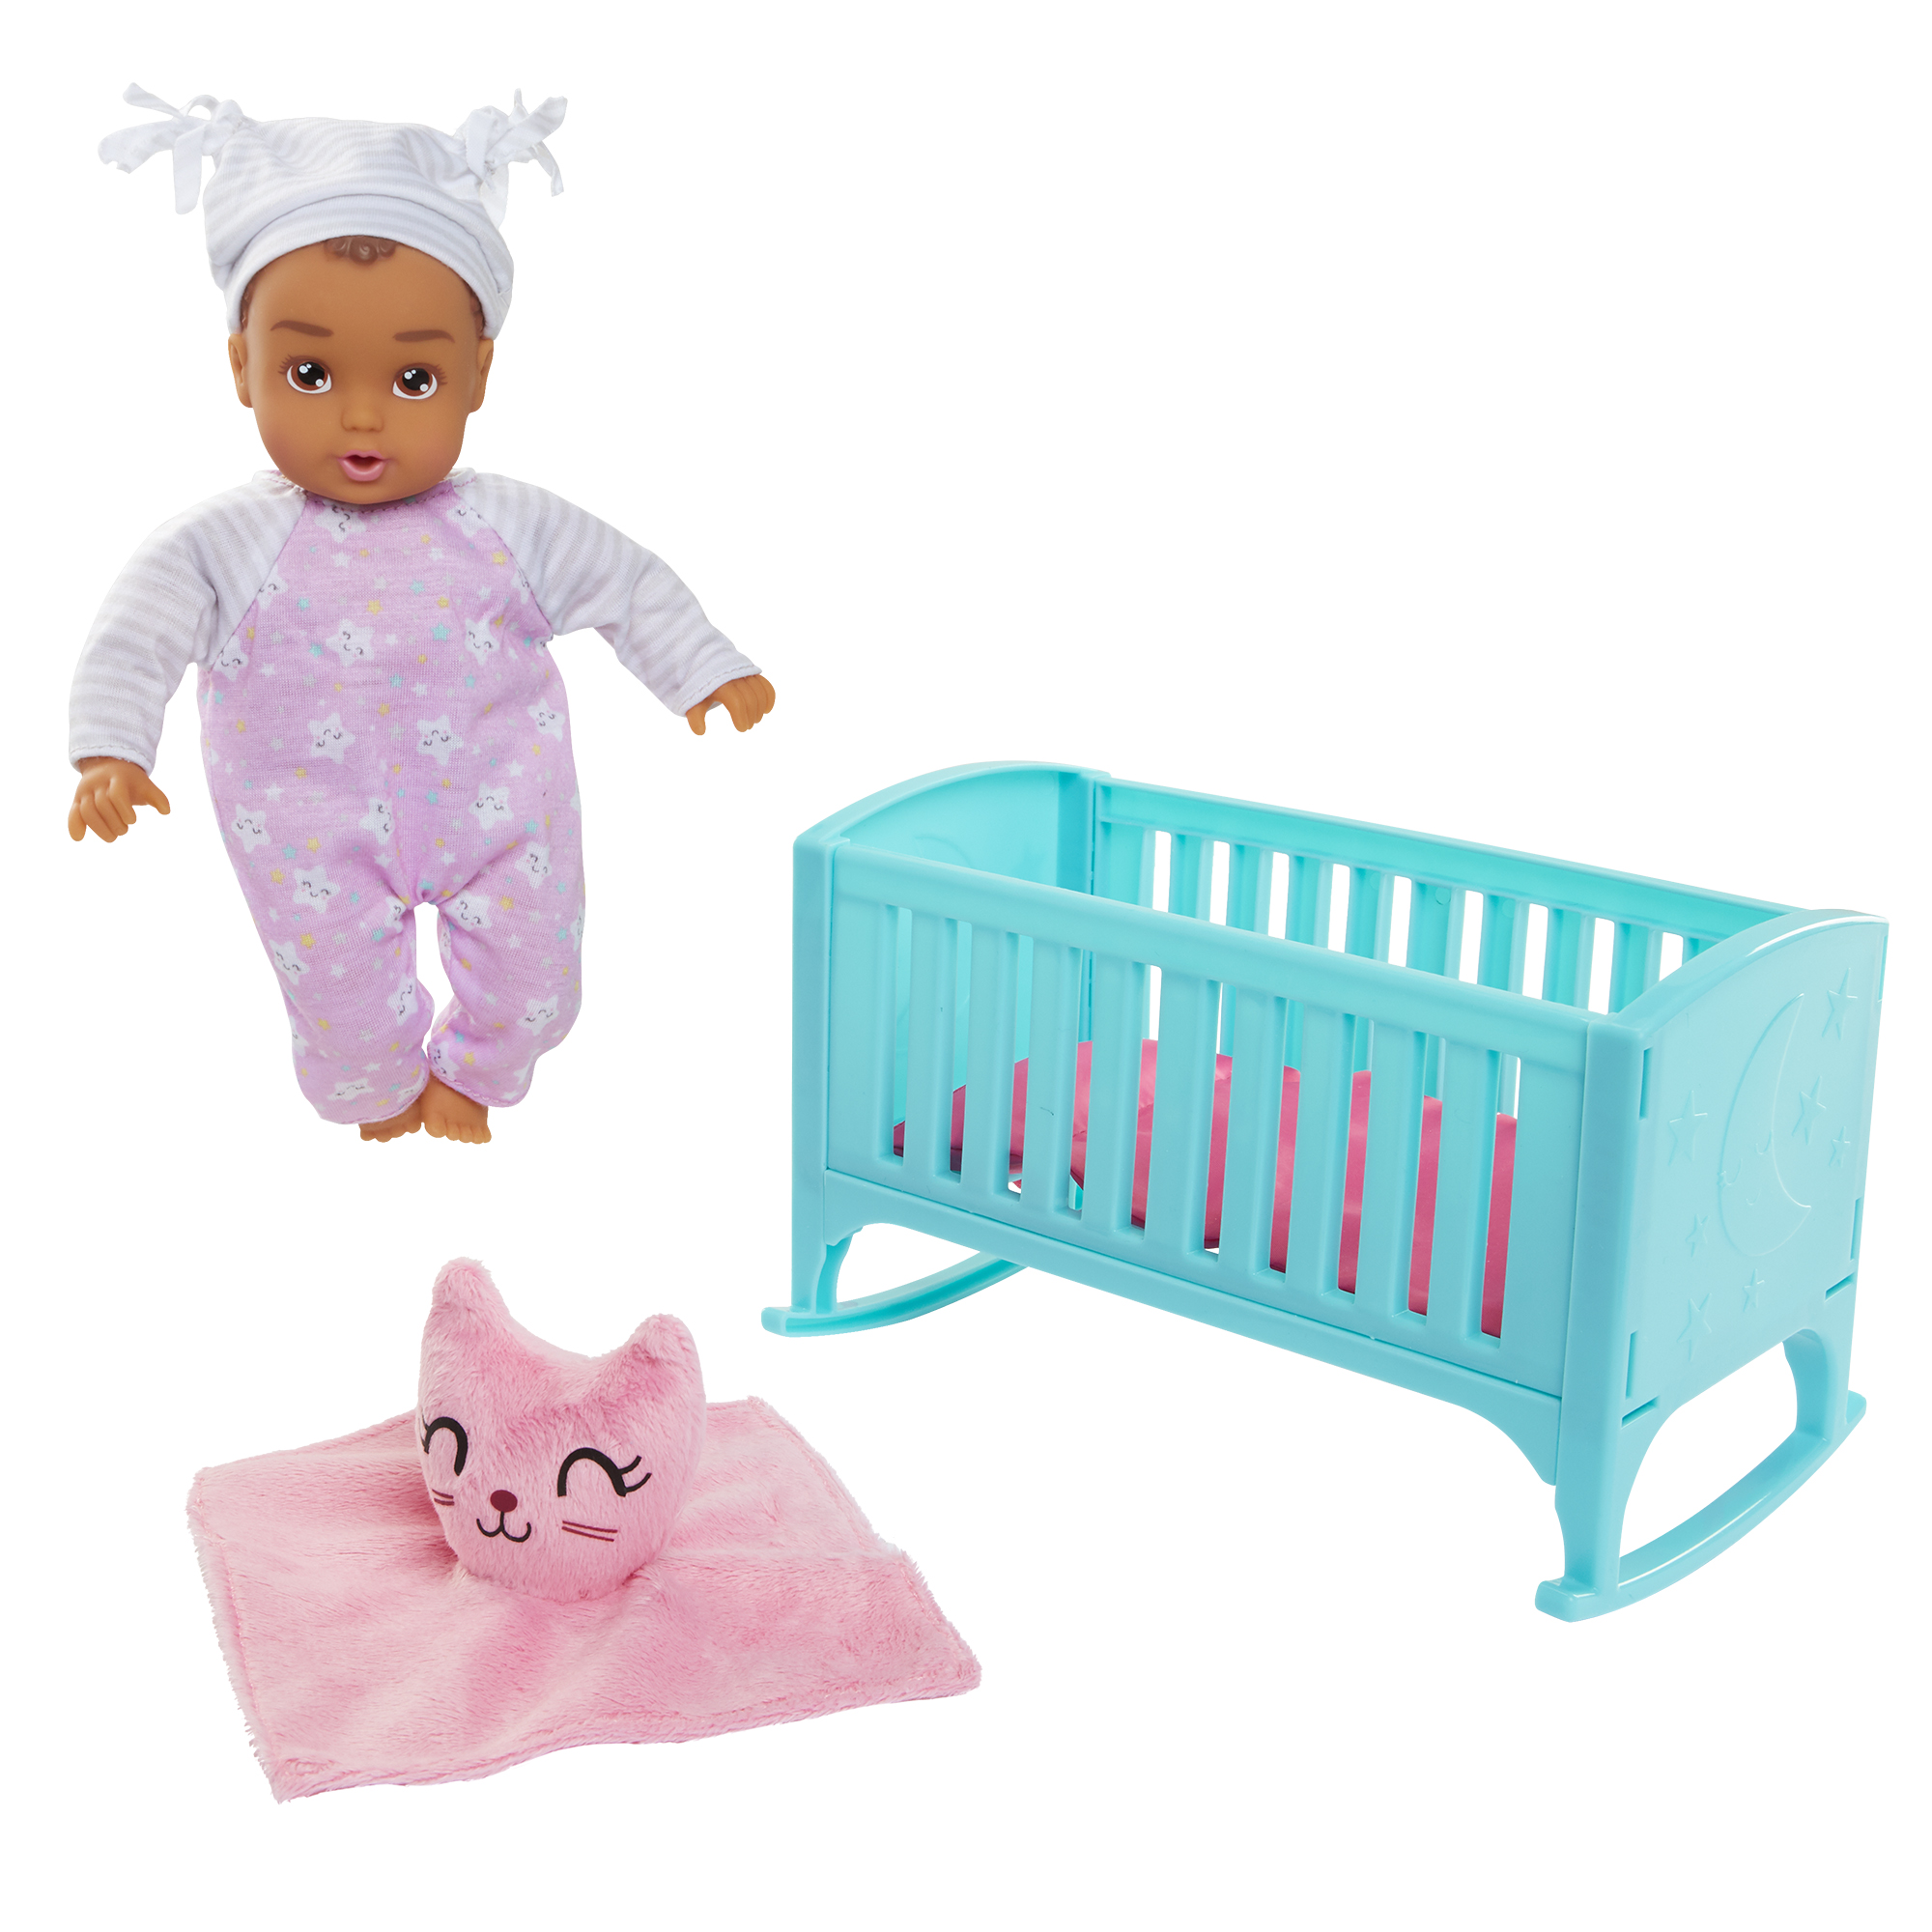 Perfectly Cute Baby My Lil' Baby Night Night Playset